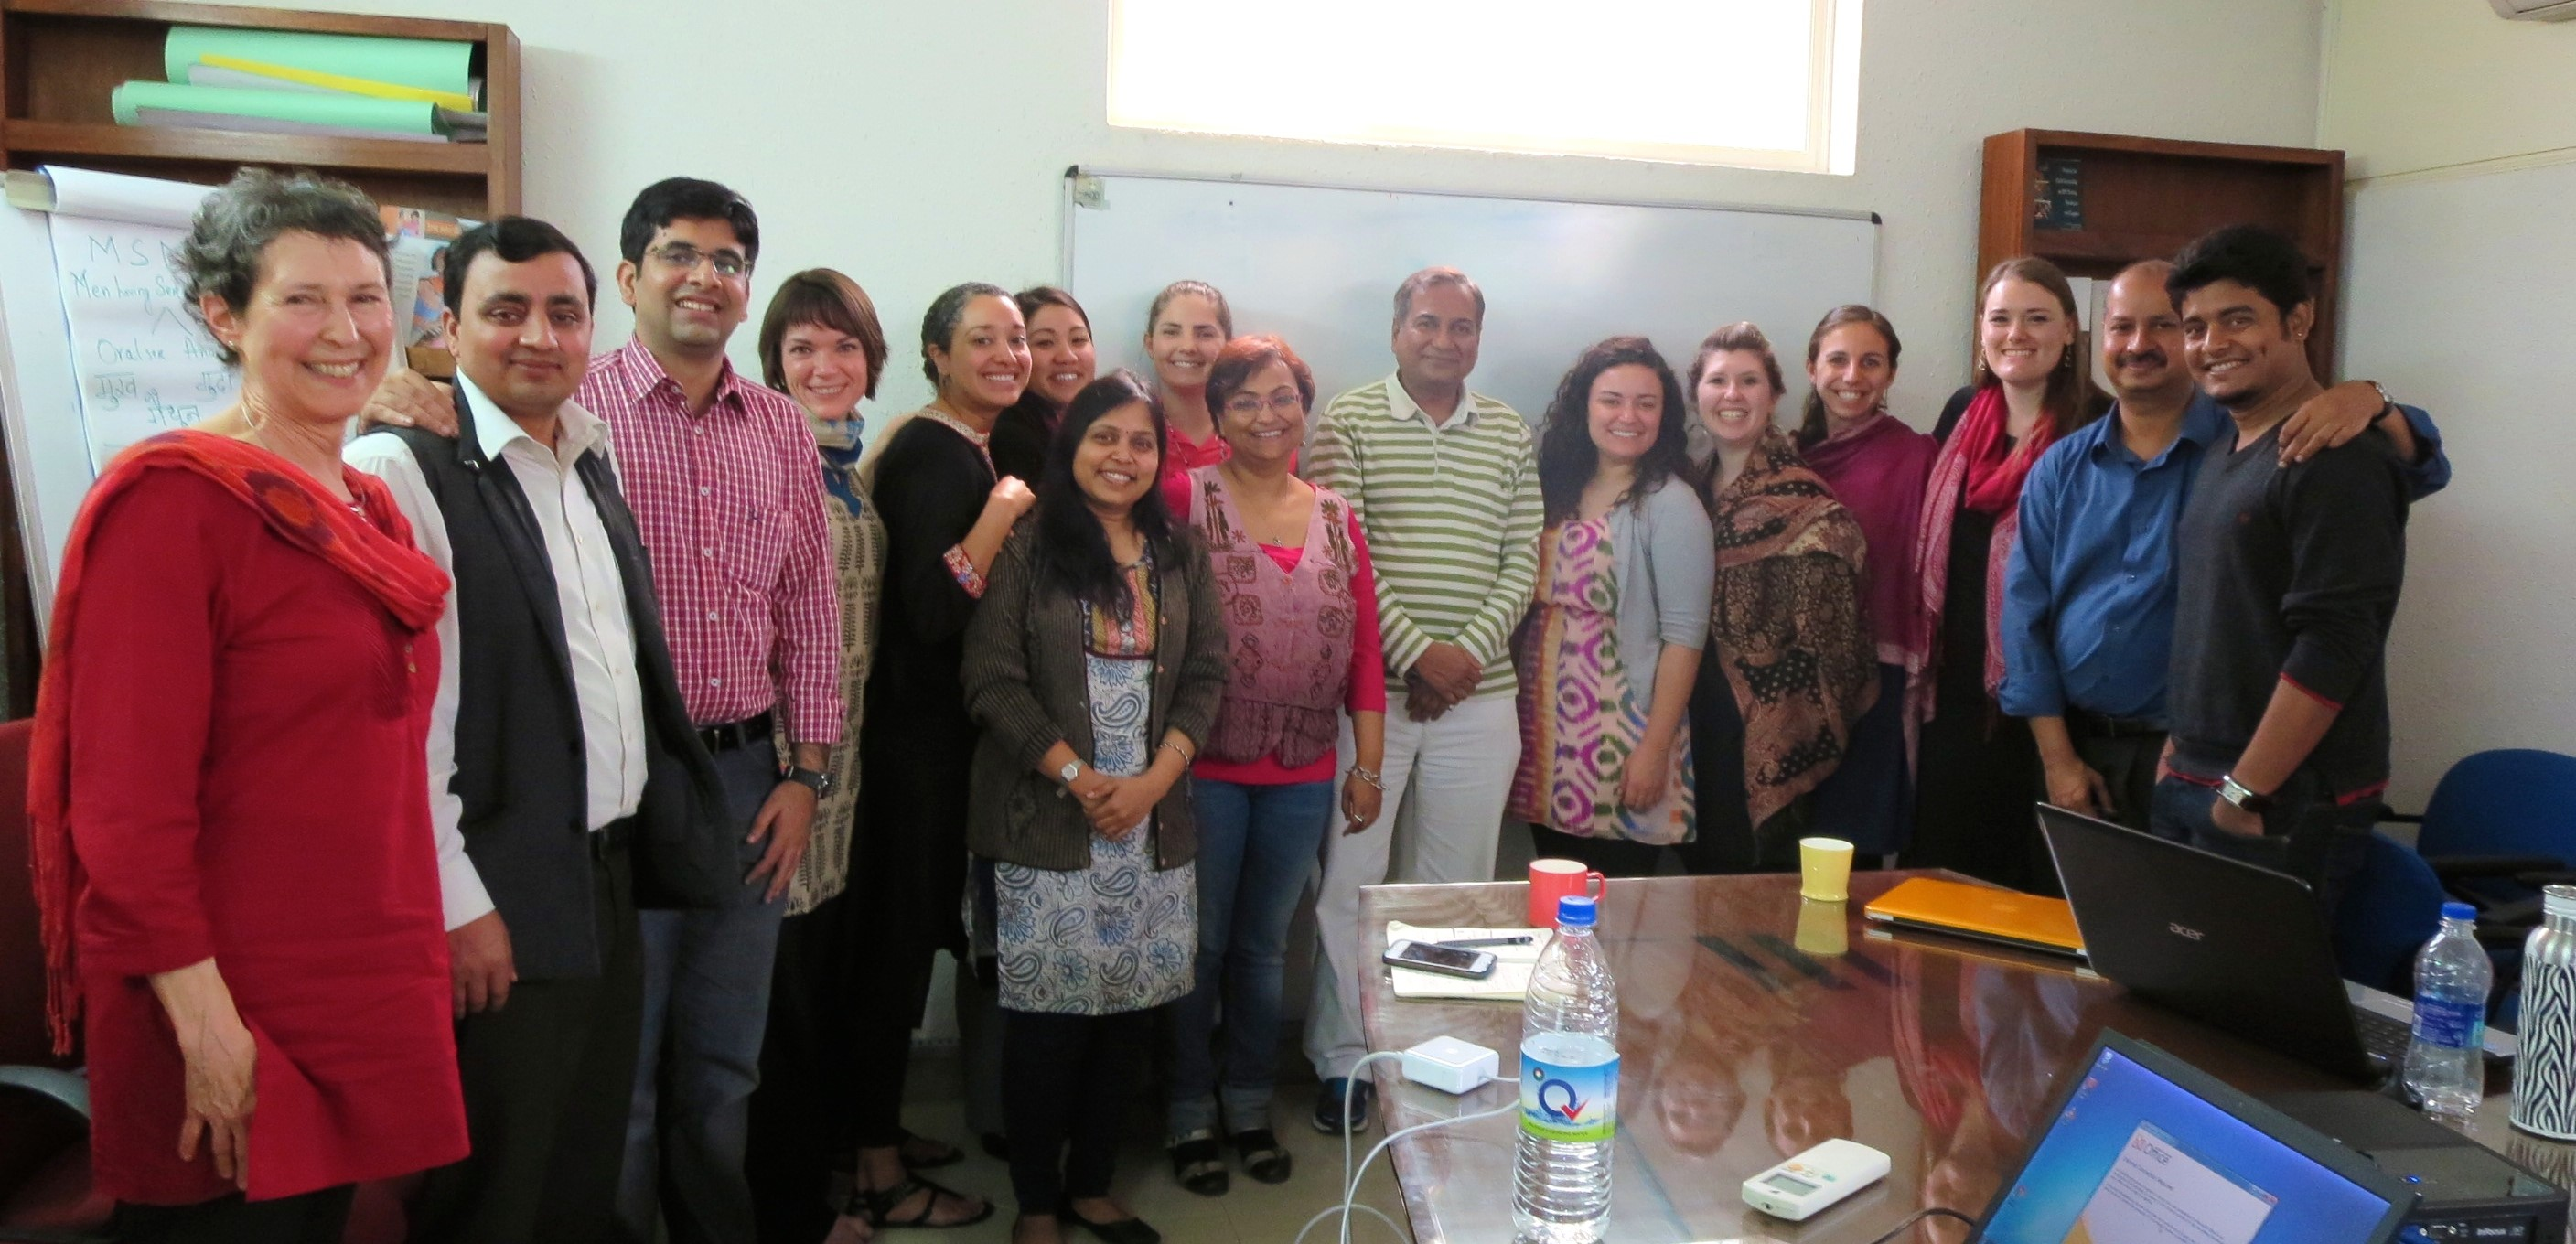 Drs. Anita Farel (far left) and Rohit Ramaswamy (second from right) taught a unique interdisciplinary course in spring 2014-a Gillings Global Implementation Lab that solved health problems in N.C. and India.